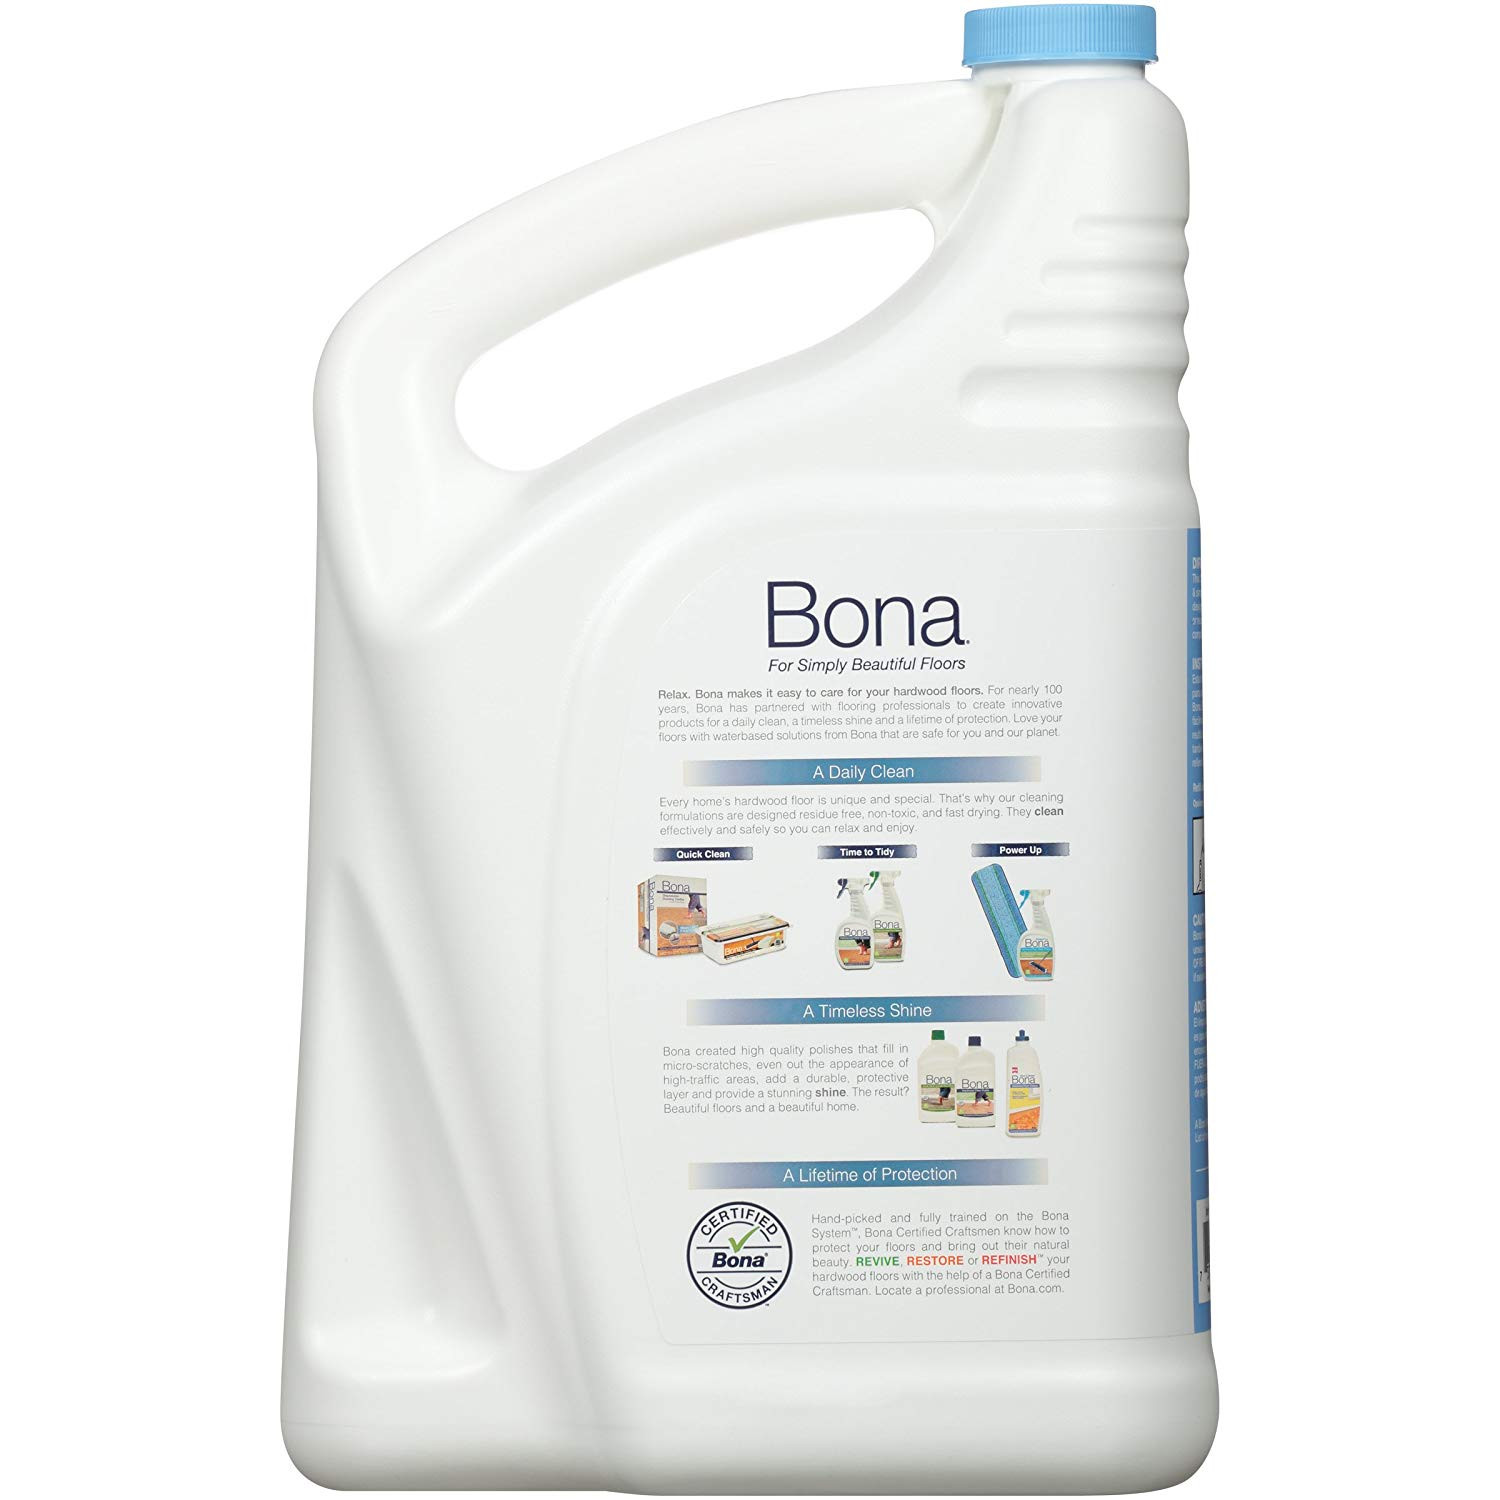 how to refill bona hardwood floor cleaner of amazon com bona wm700018182 free simple hardwood floor cleaner in amazon com bona wm700018182 free simple hardwood floor cleaner refill 128 oz health personal care